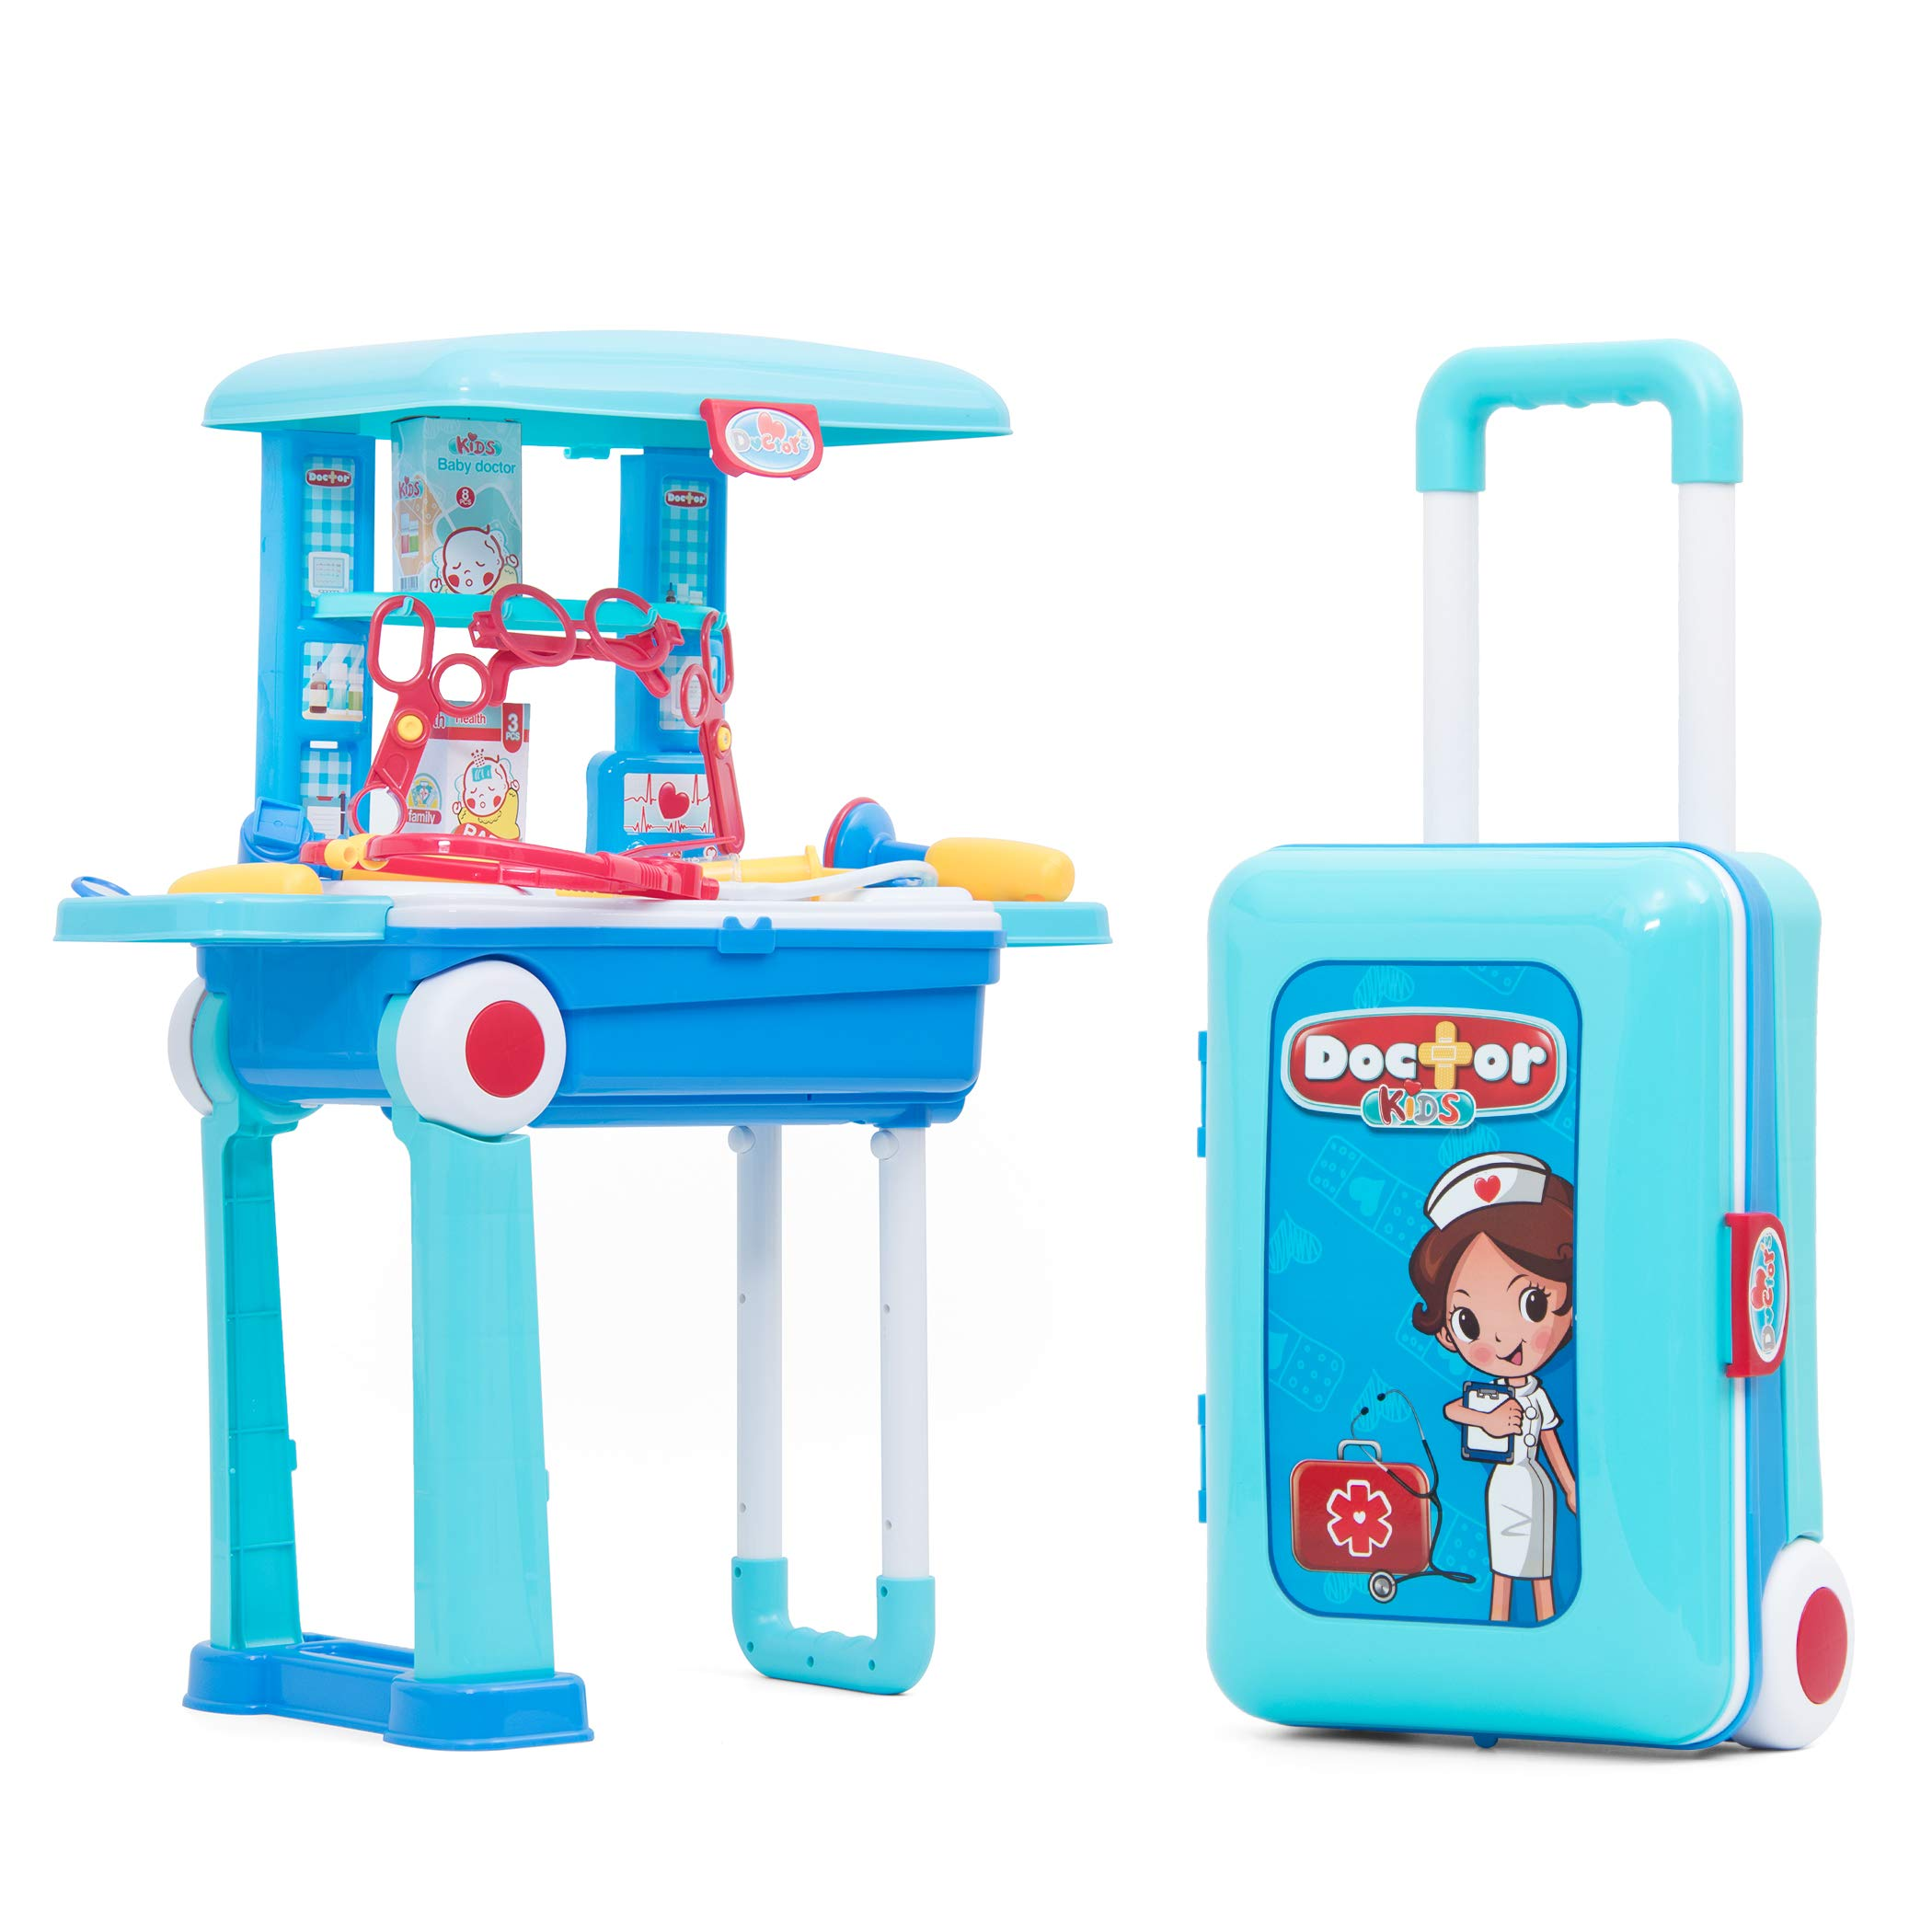 Fondear Portable Toy Play Set Cute Kitchen / Doctor / Tool Playset Fun Cooking Toy / Medical Kits / Bench Building for Toddlers (Doctor Playset)